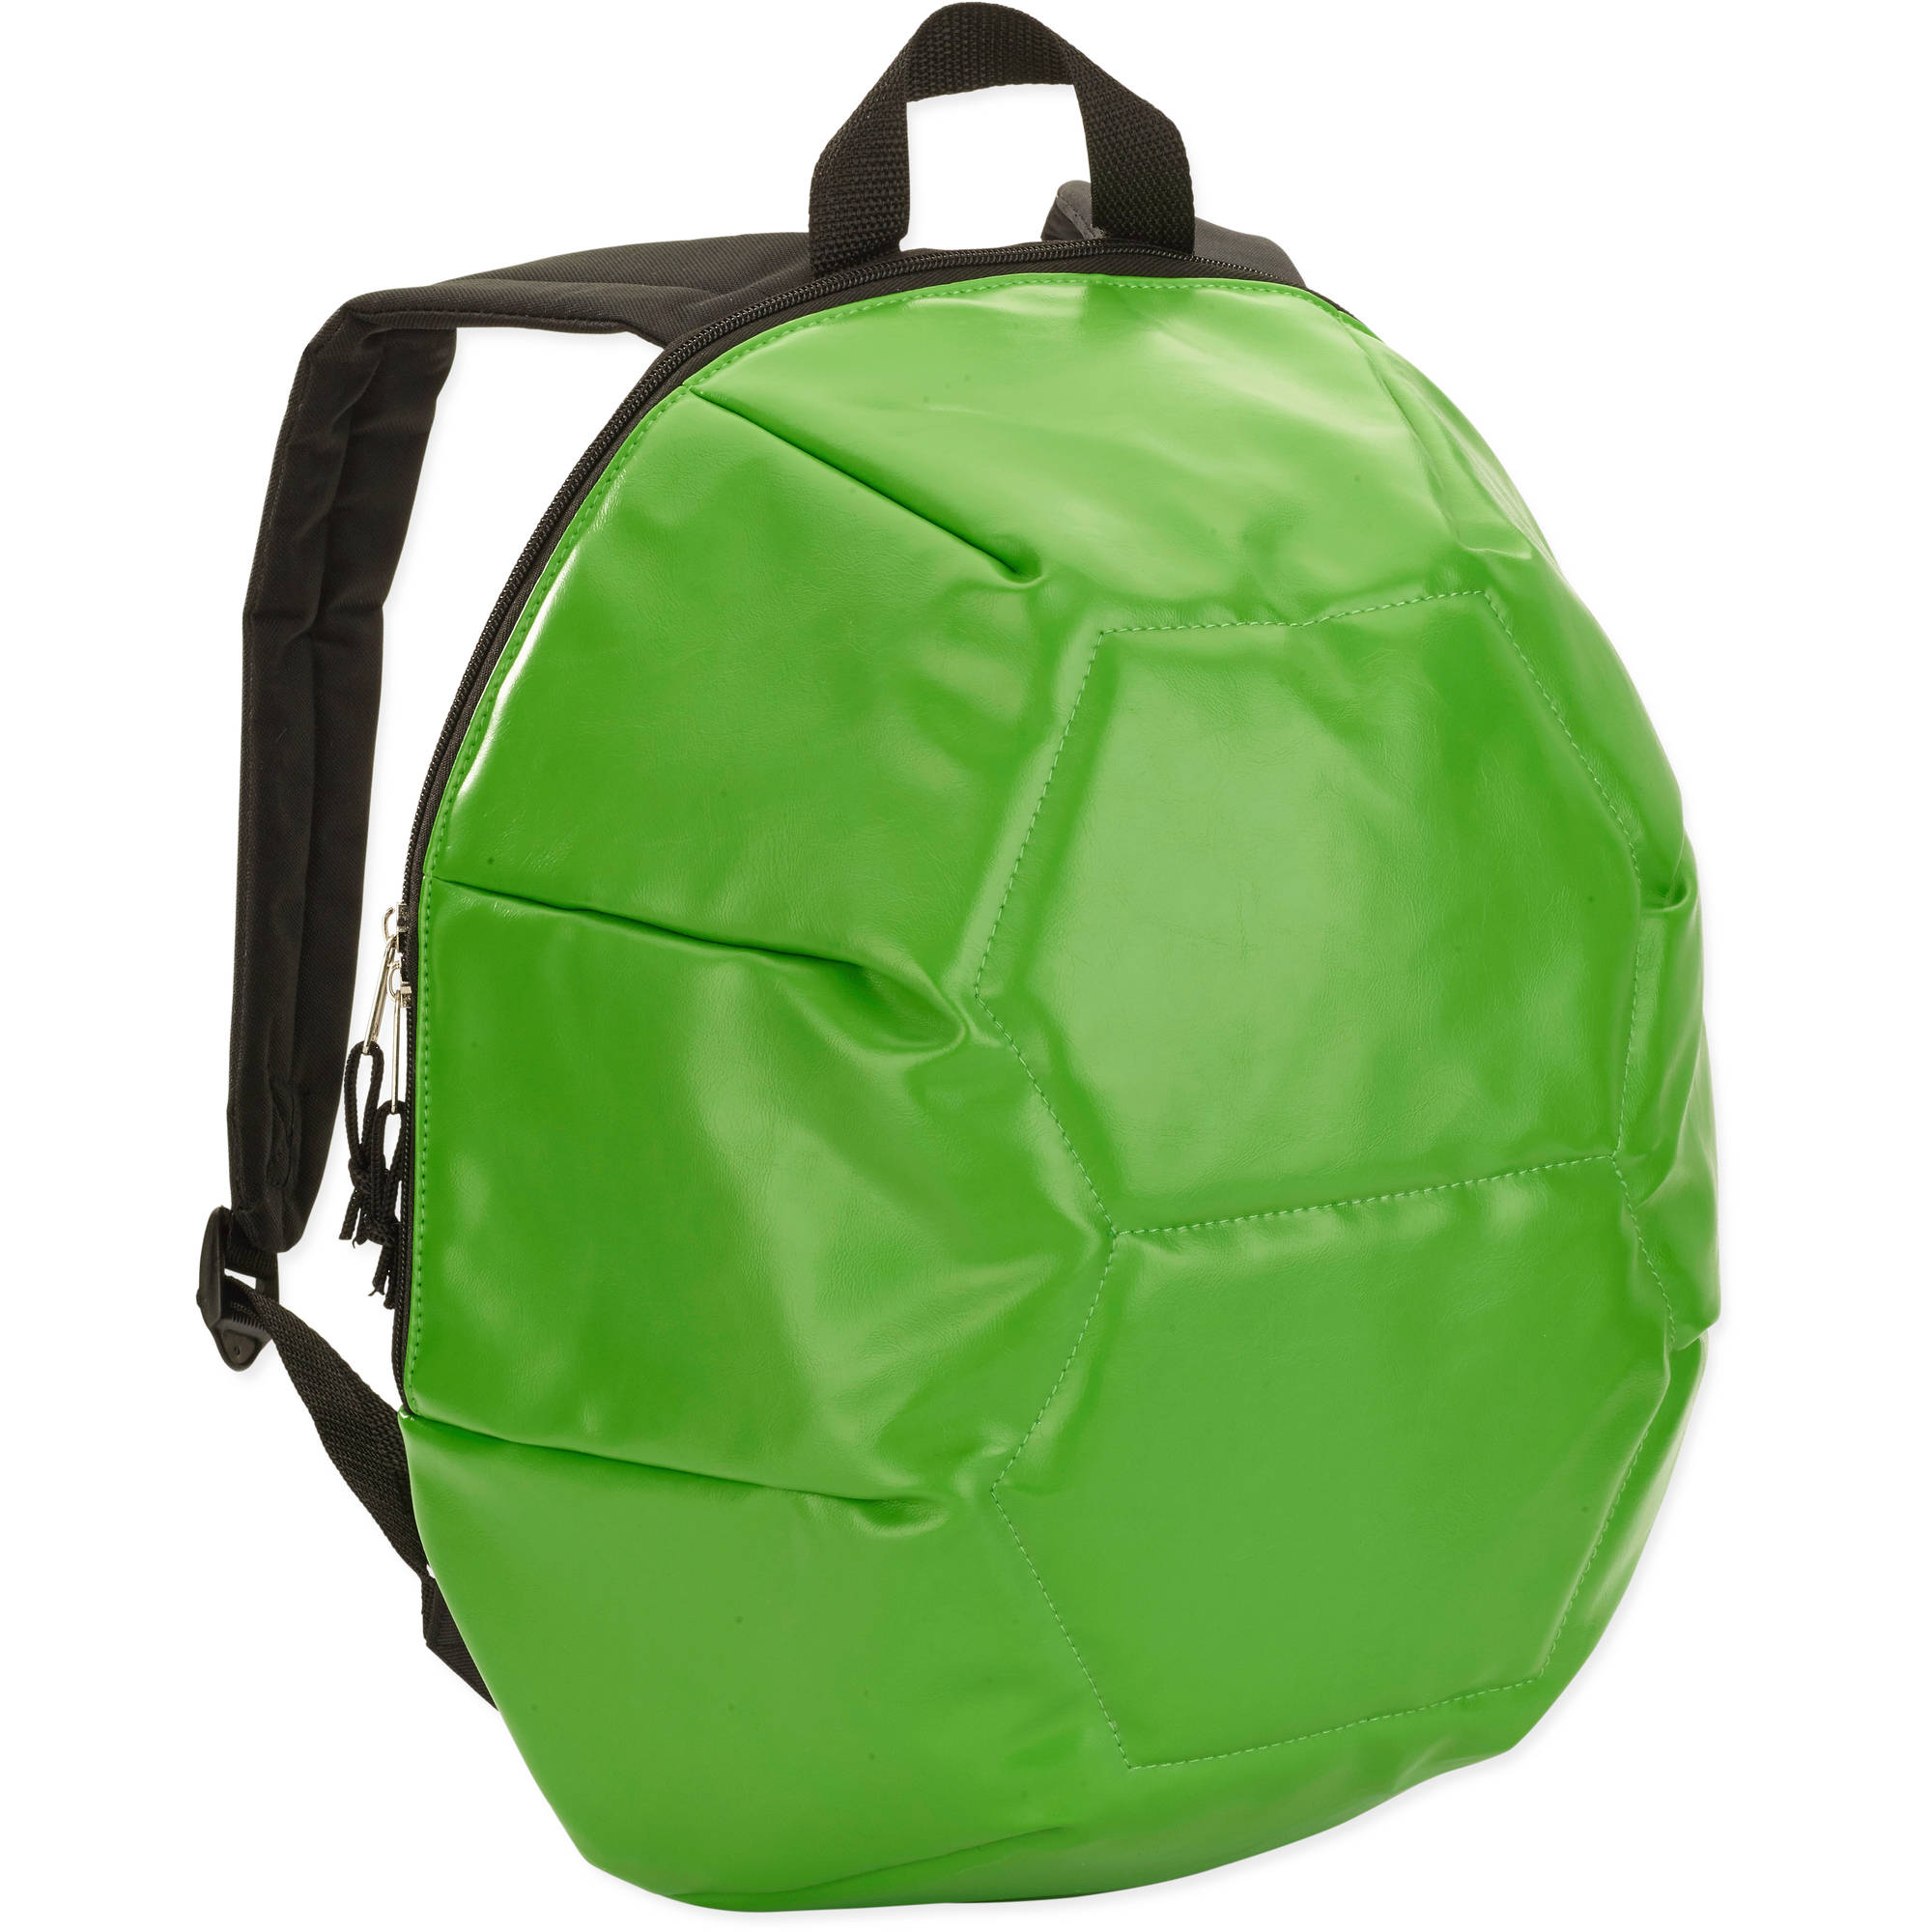 Teenage Mutant Ninja Turtles Turtle Shell Kids' Backpack